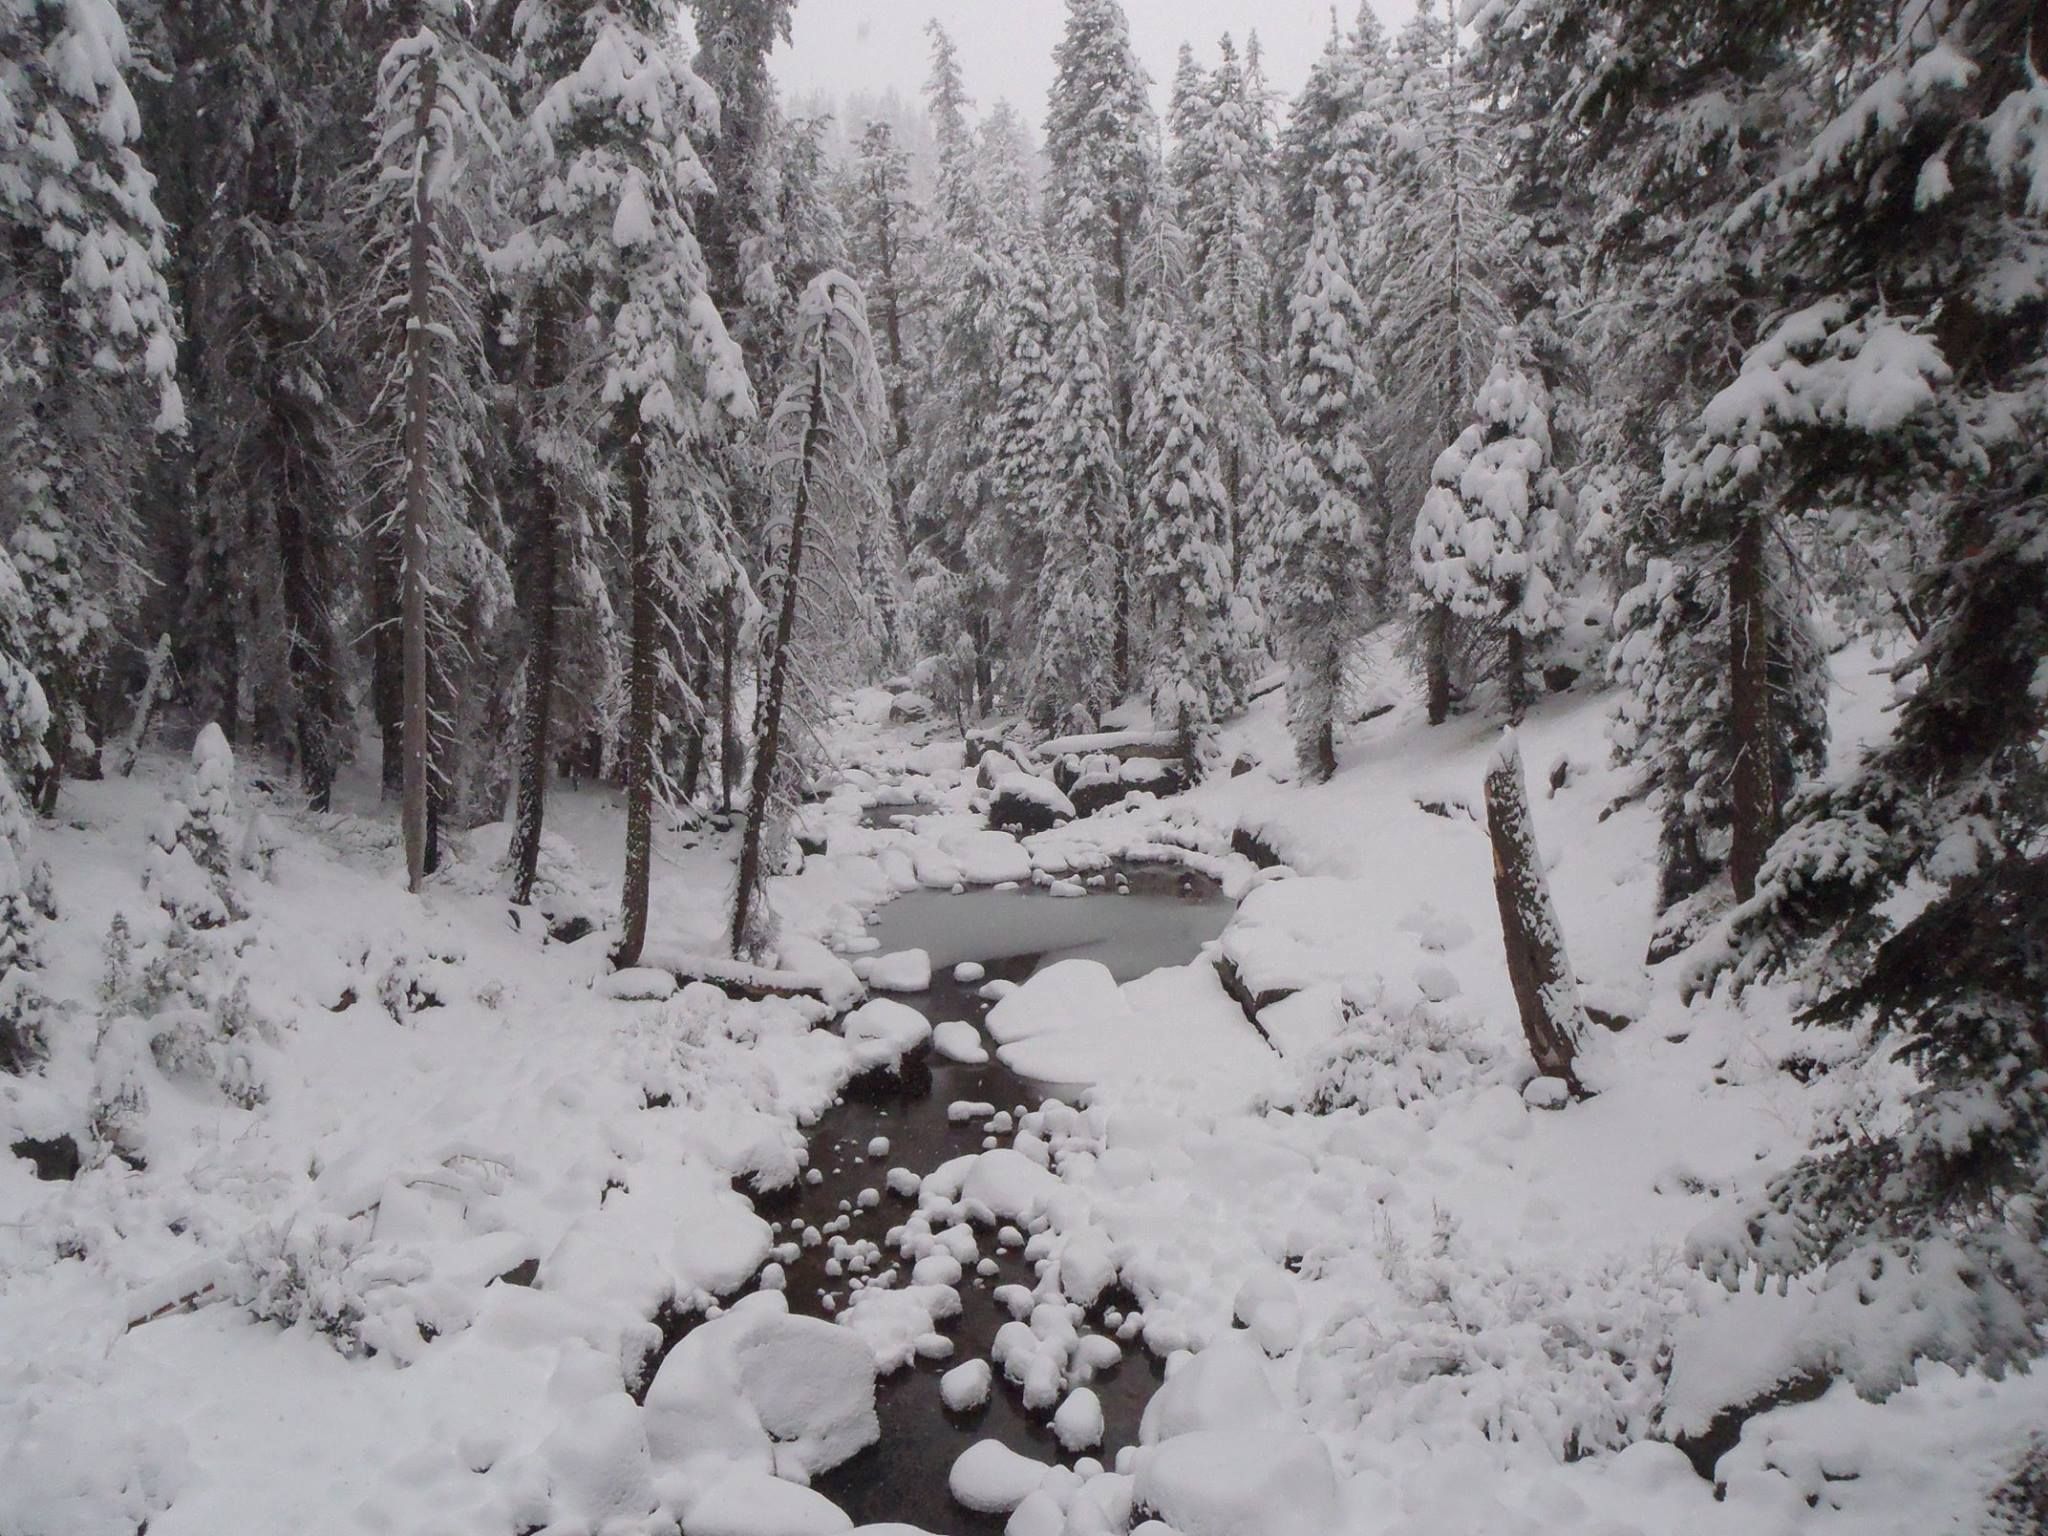 Snow at Marble Fork near Lodgepole, November 1, 2014